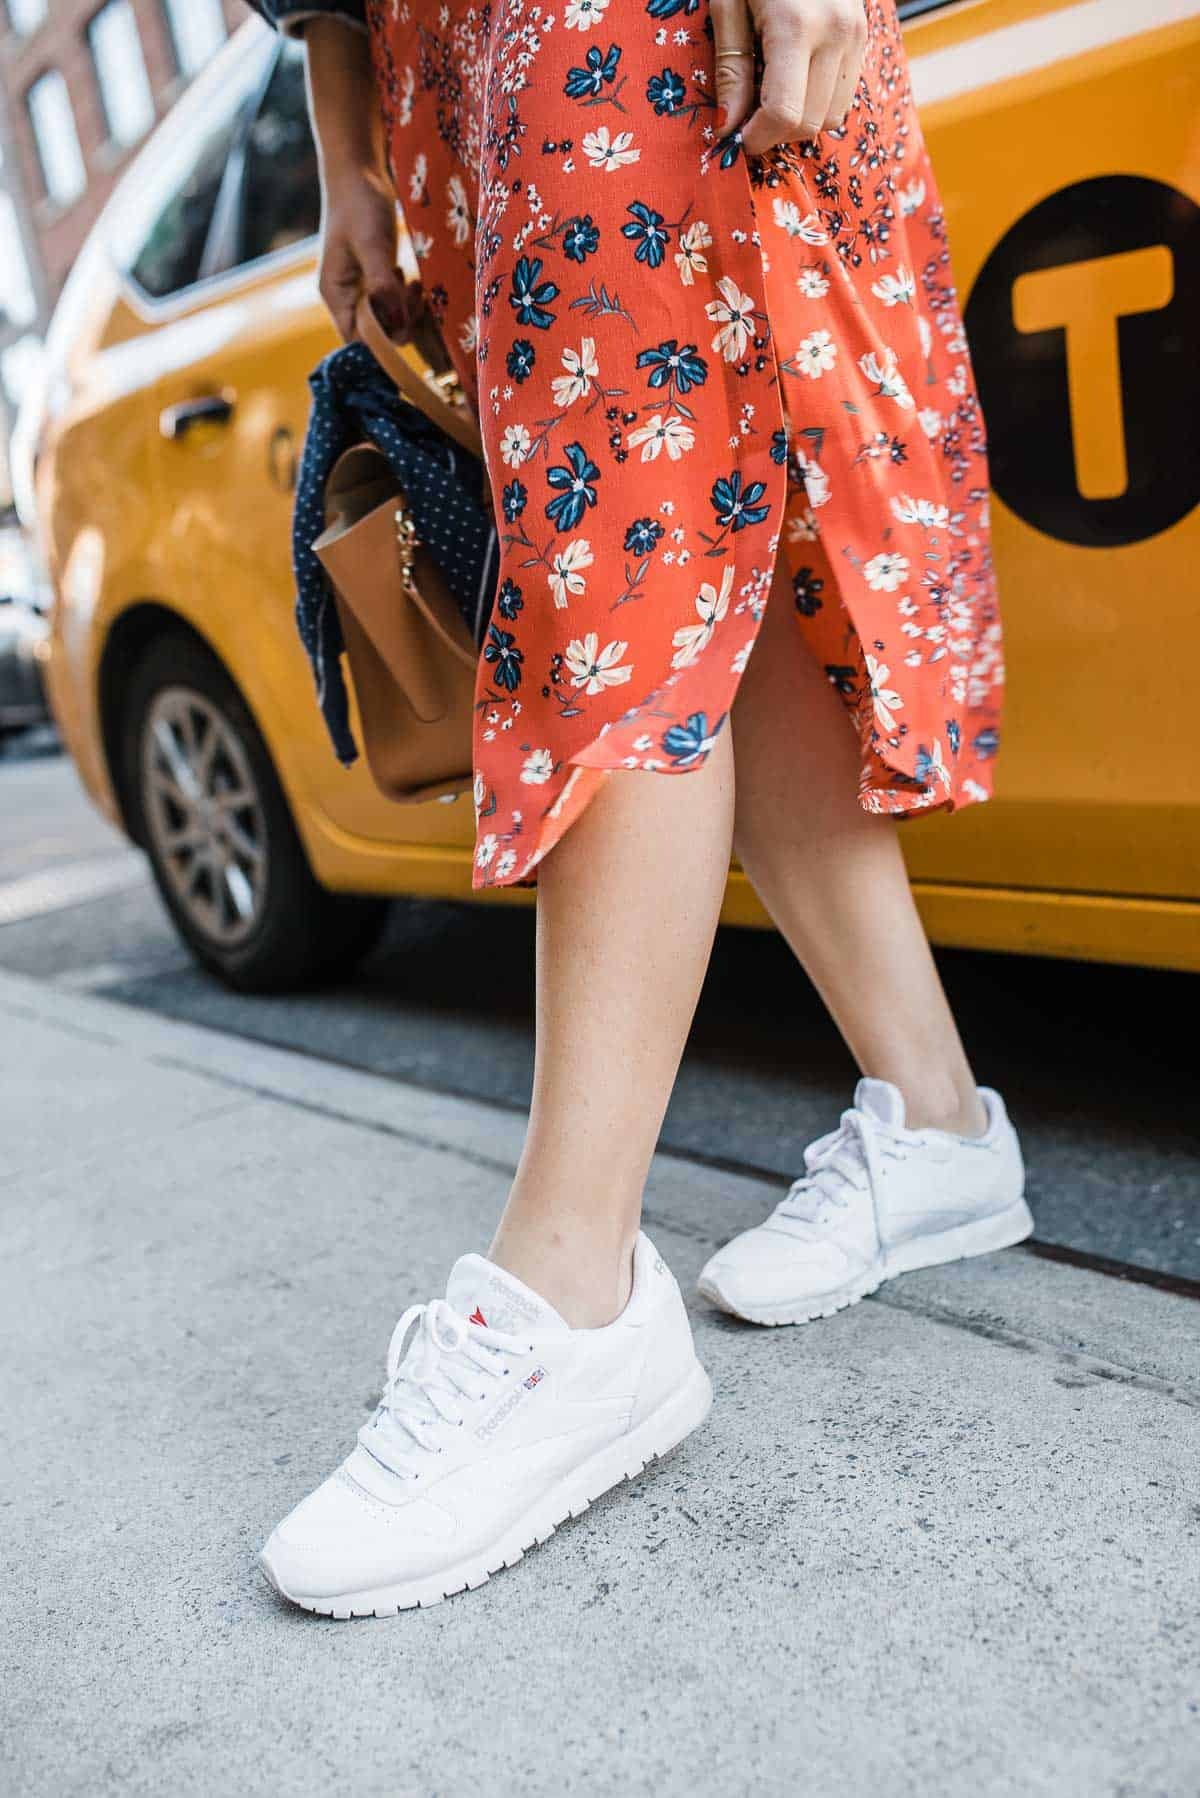 floral skirt and white sneakers outfit.